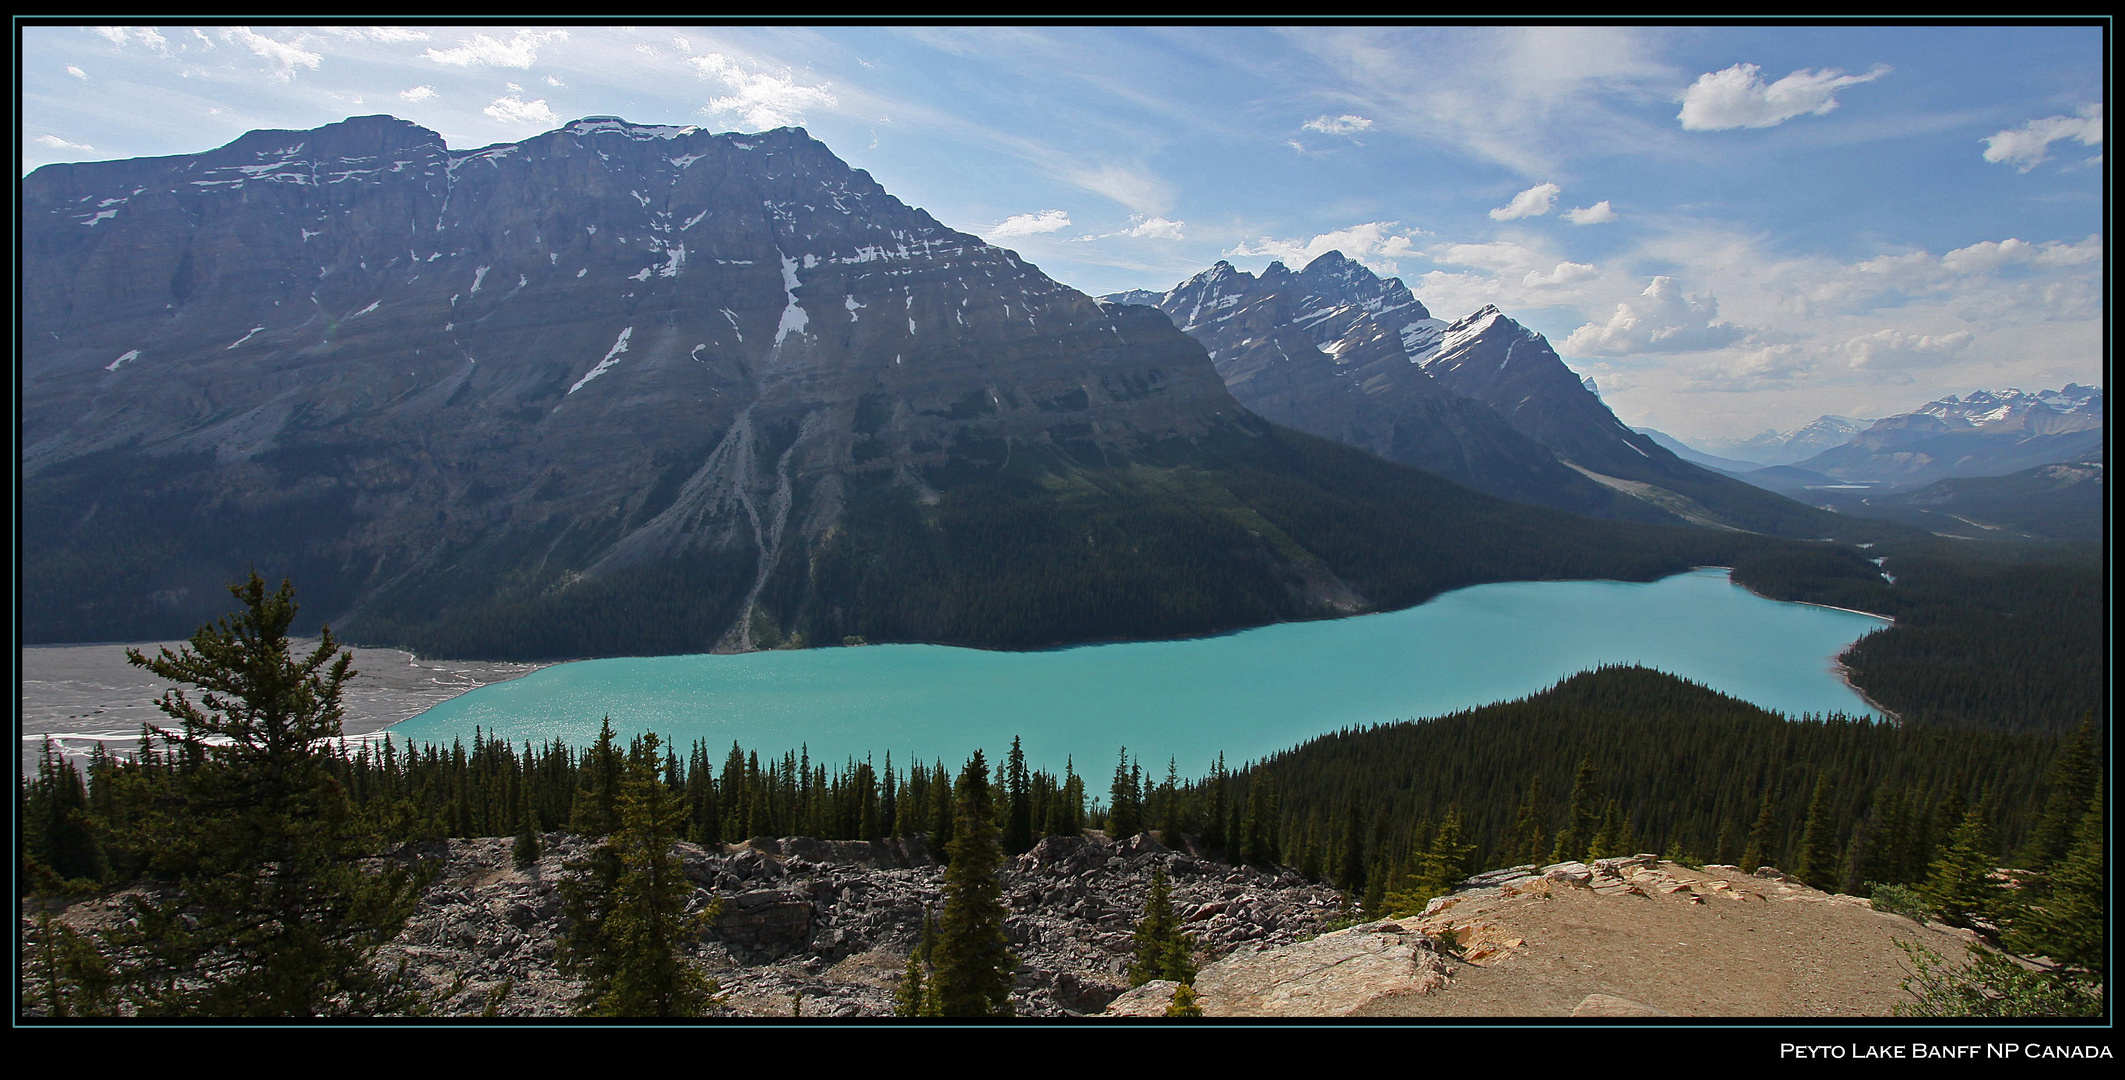 Peyto Lake Banff NP